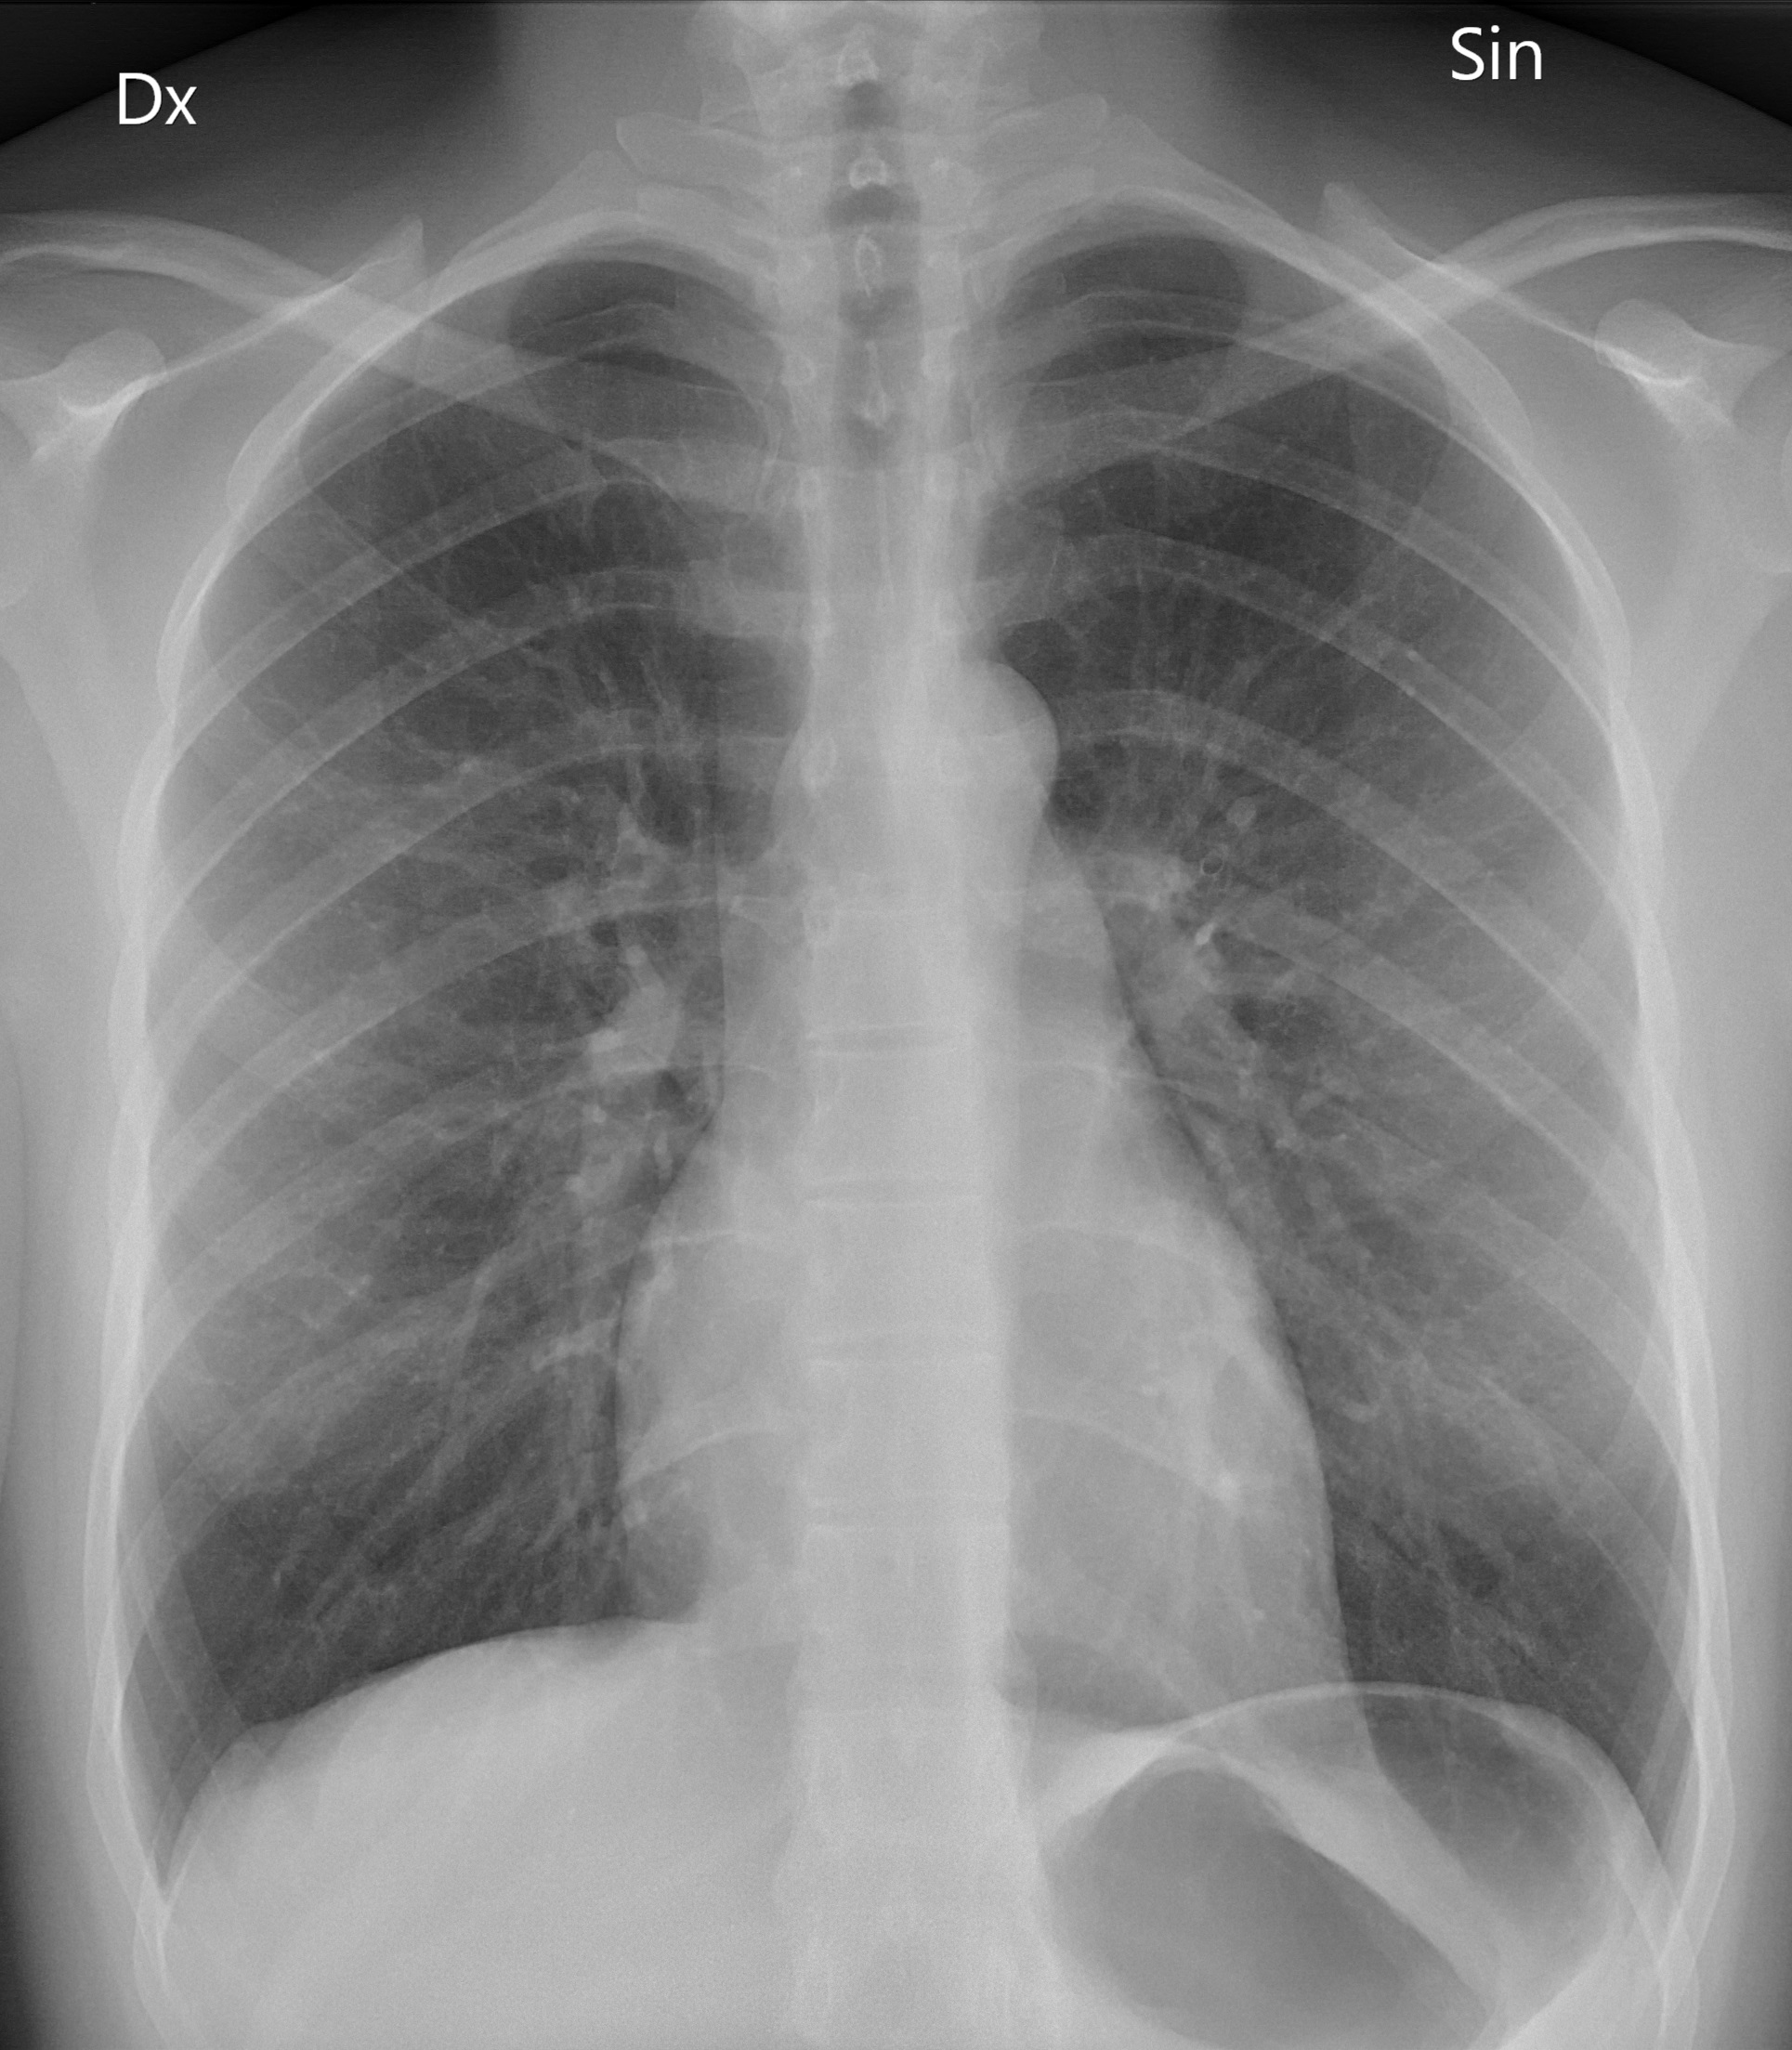 Normal Chest Xray 4 Buyxraysonline